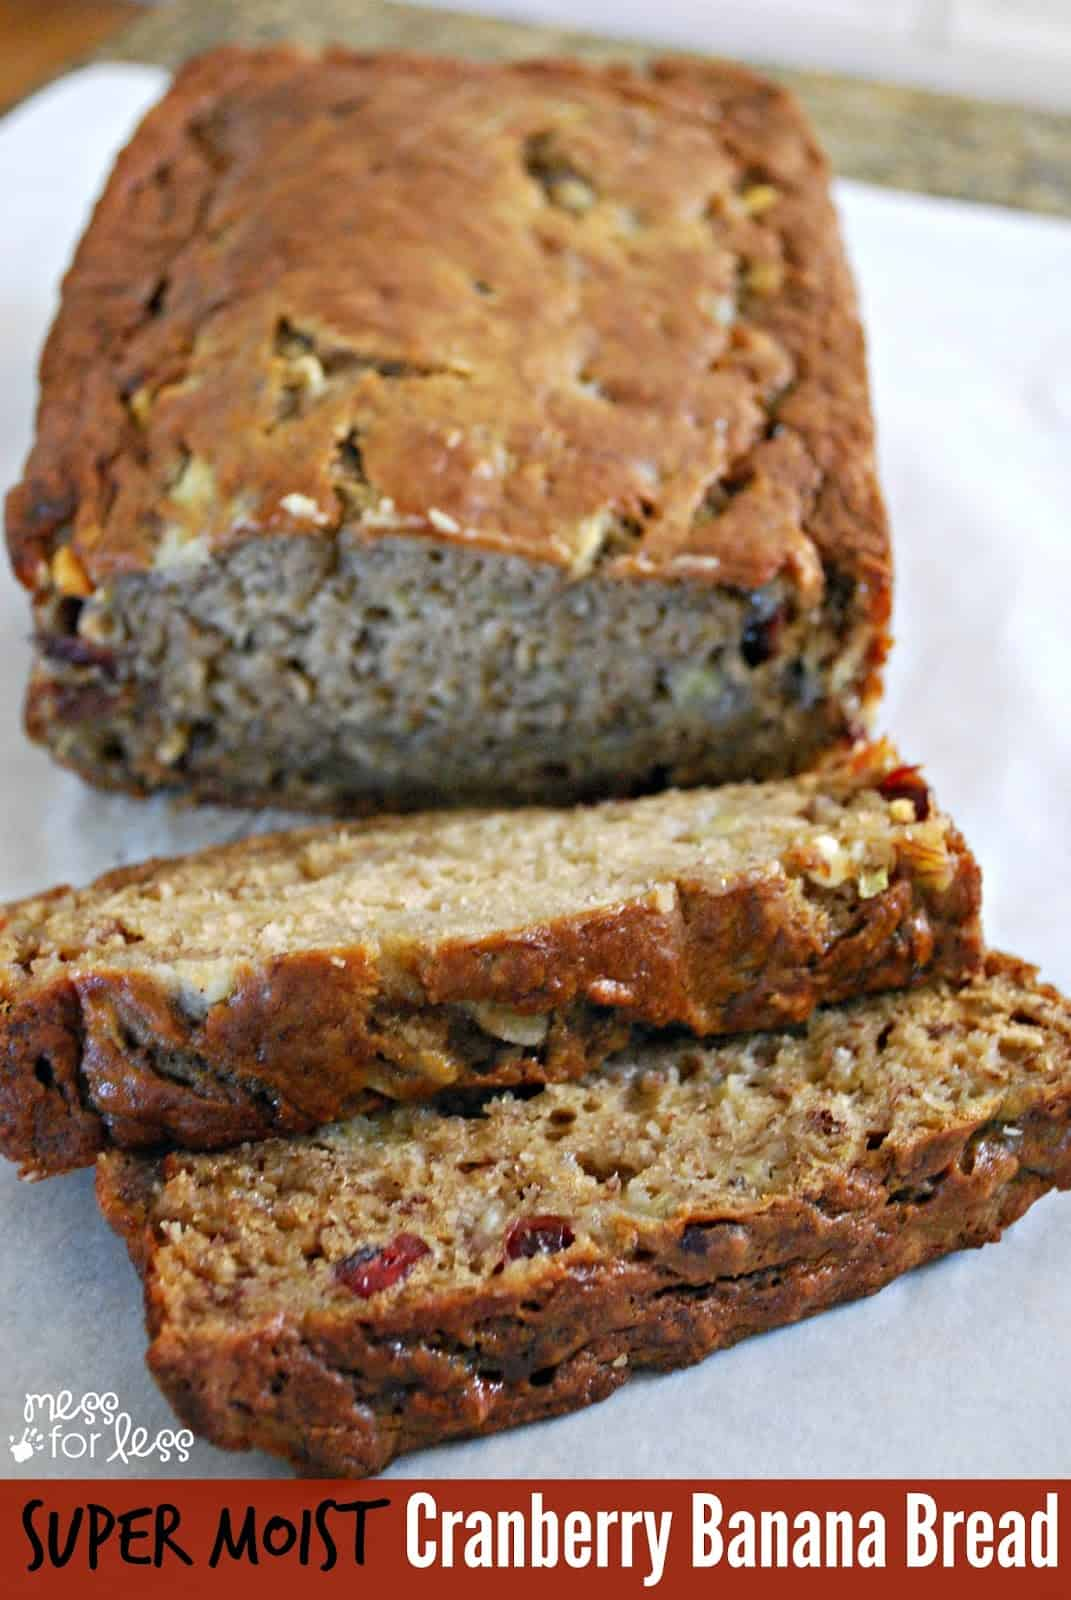 Cranberry Banana Bread - This banana bread is super moist and will melt in your mouth.